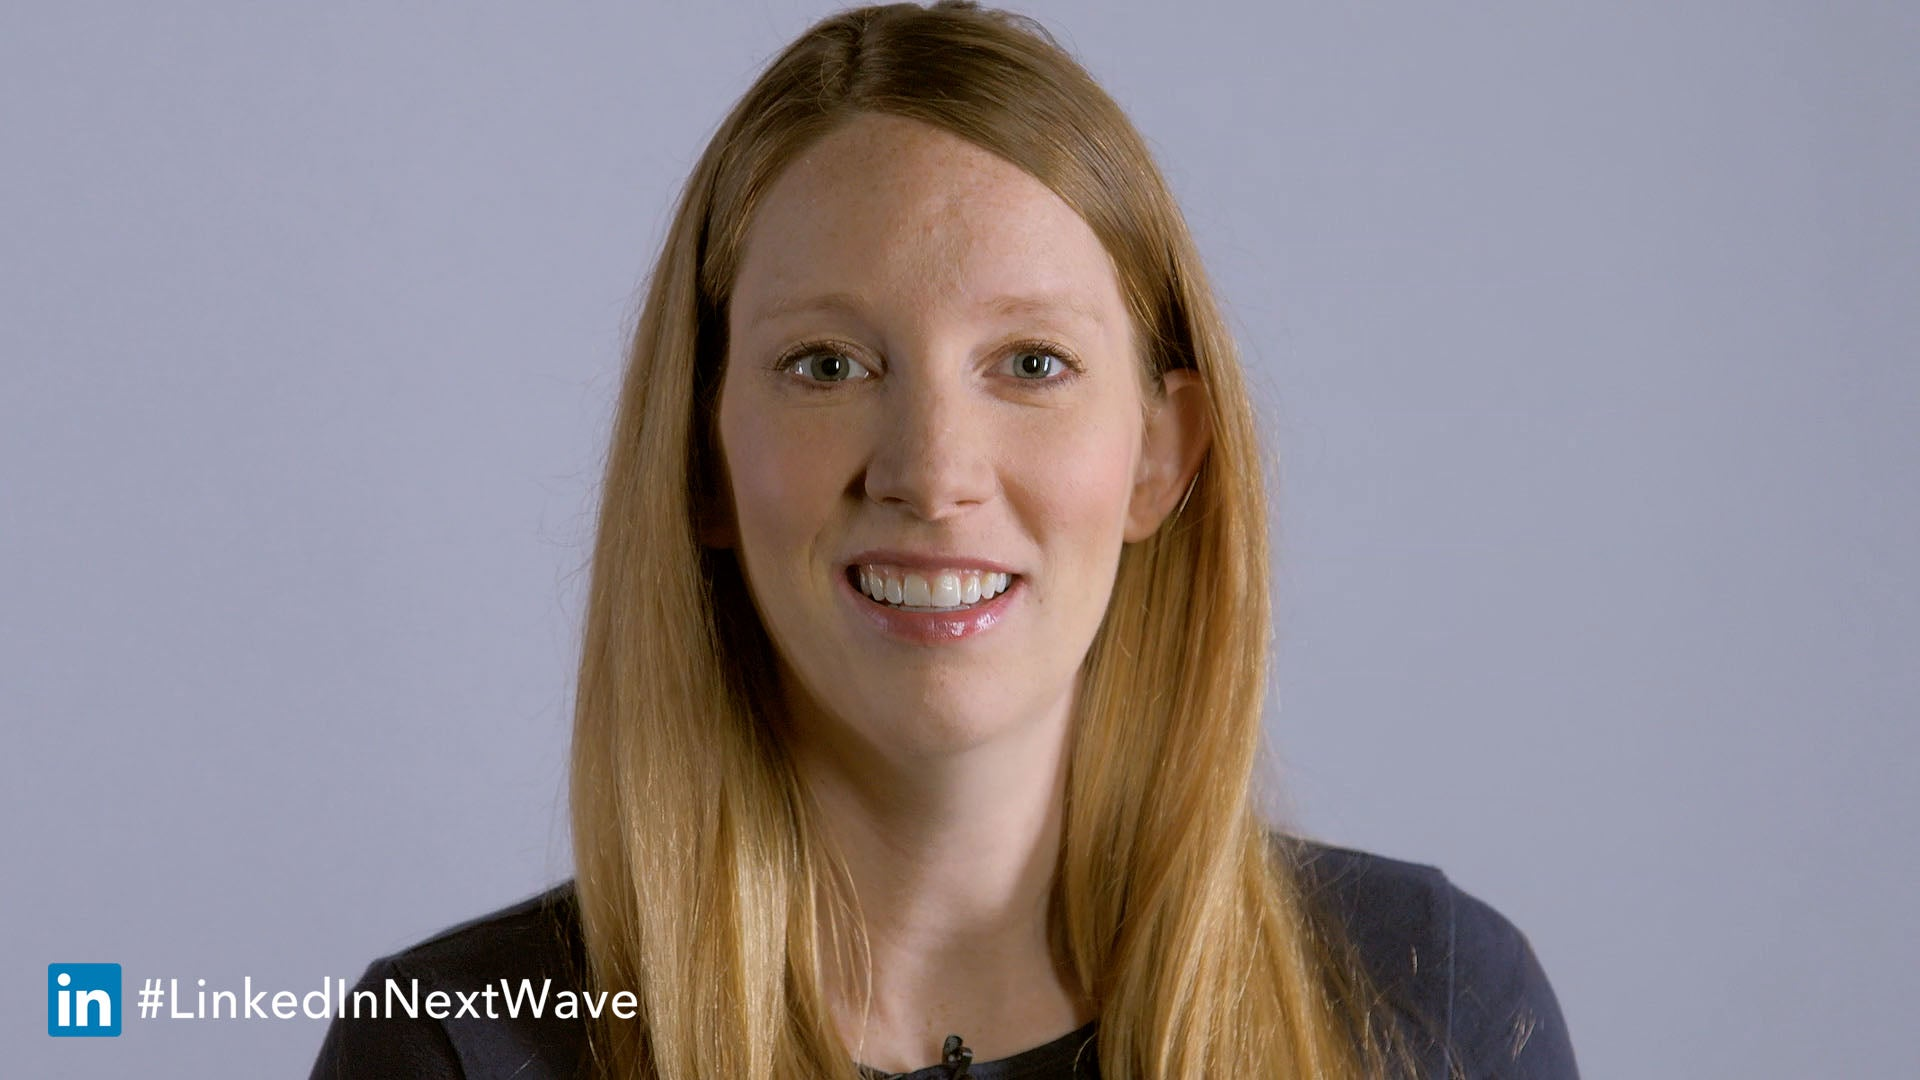 LinkedIn Next Wave: Lisa Seacat Deluca